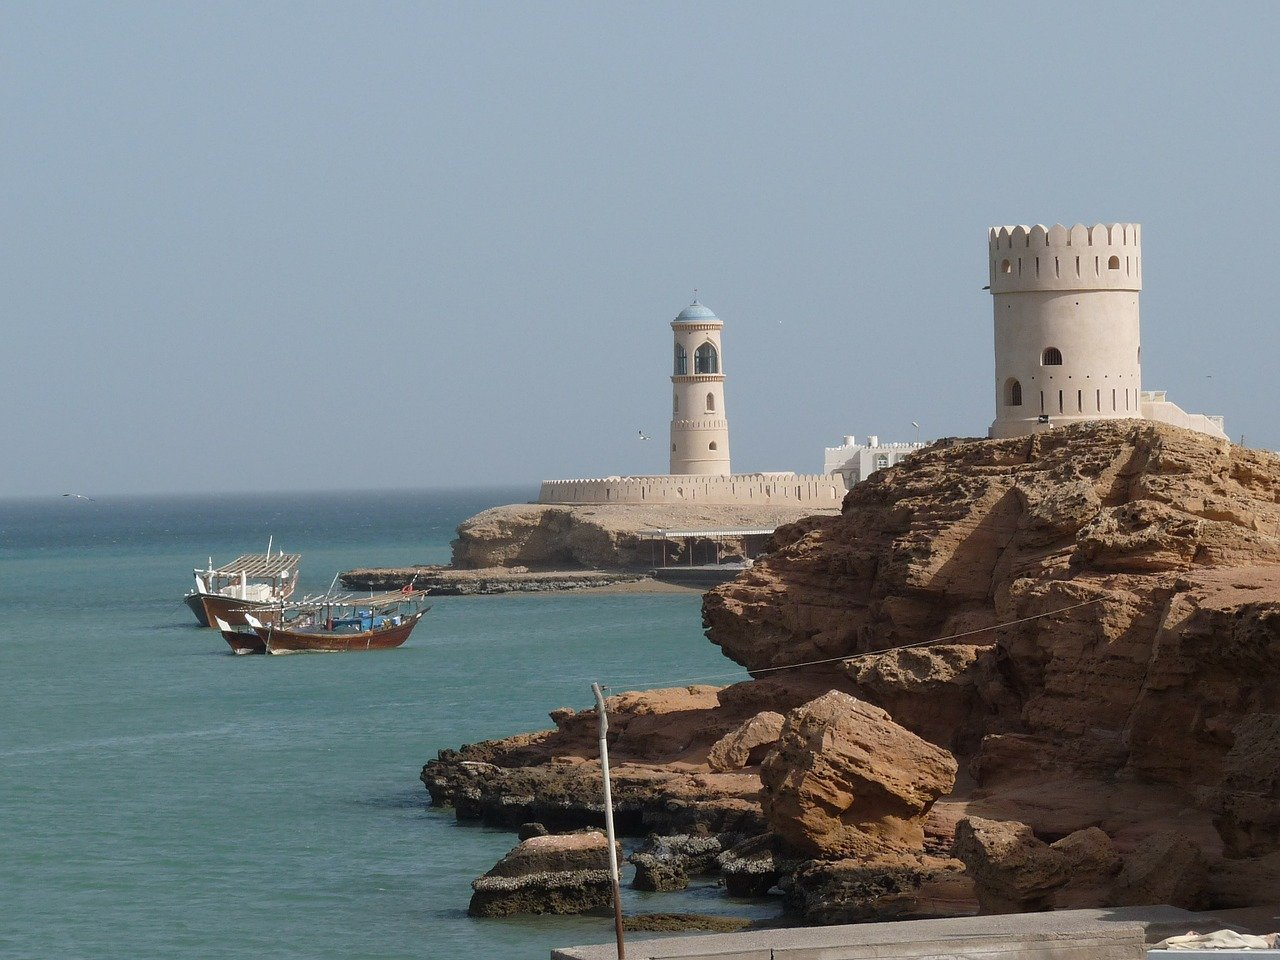 Oman tower